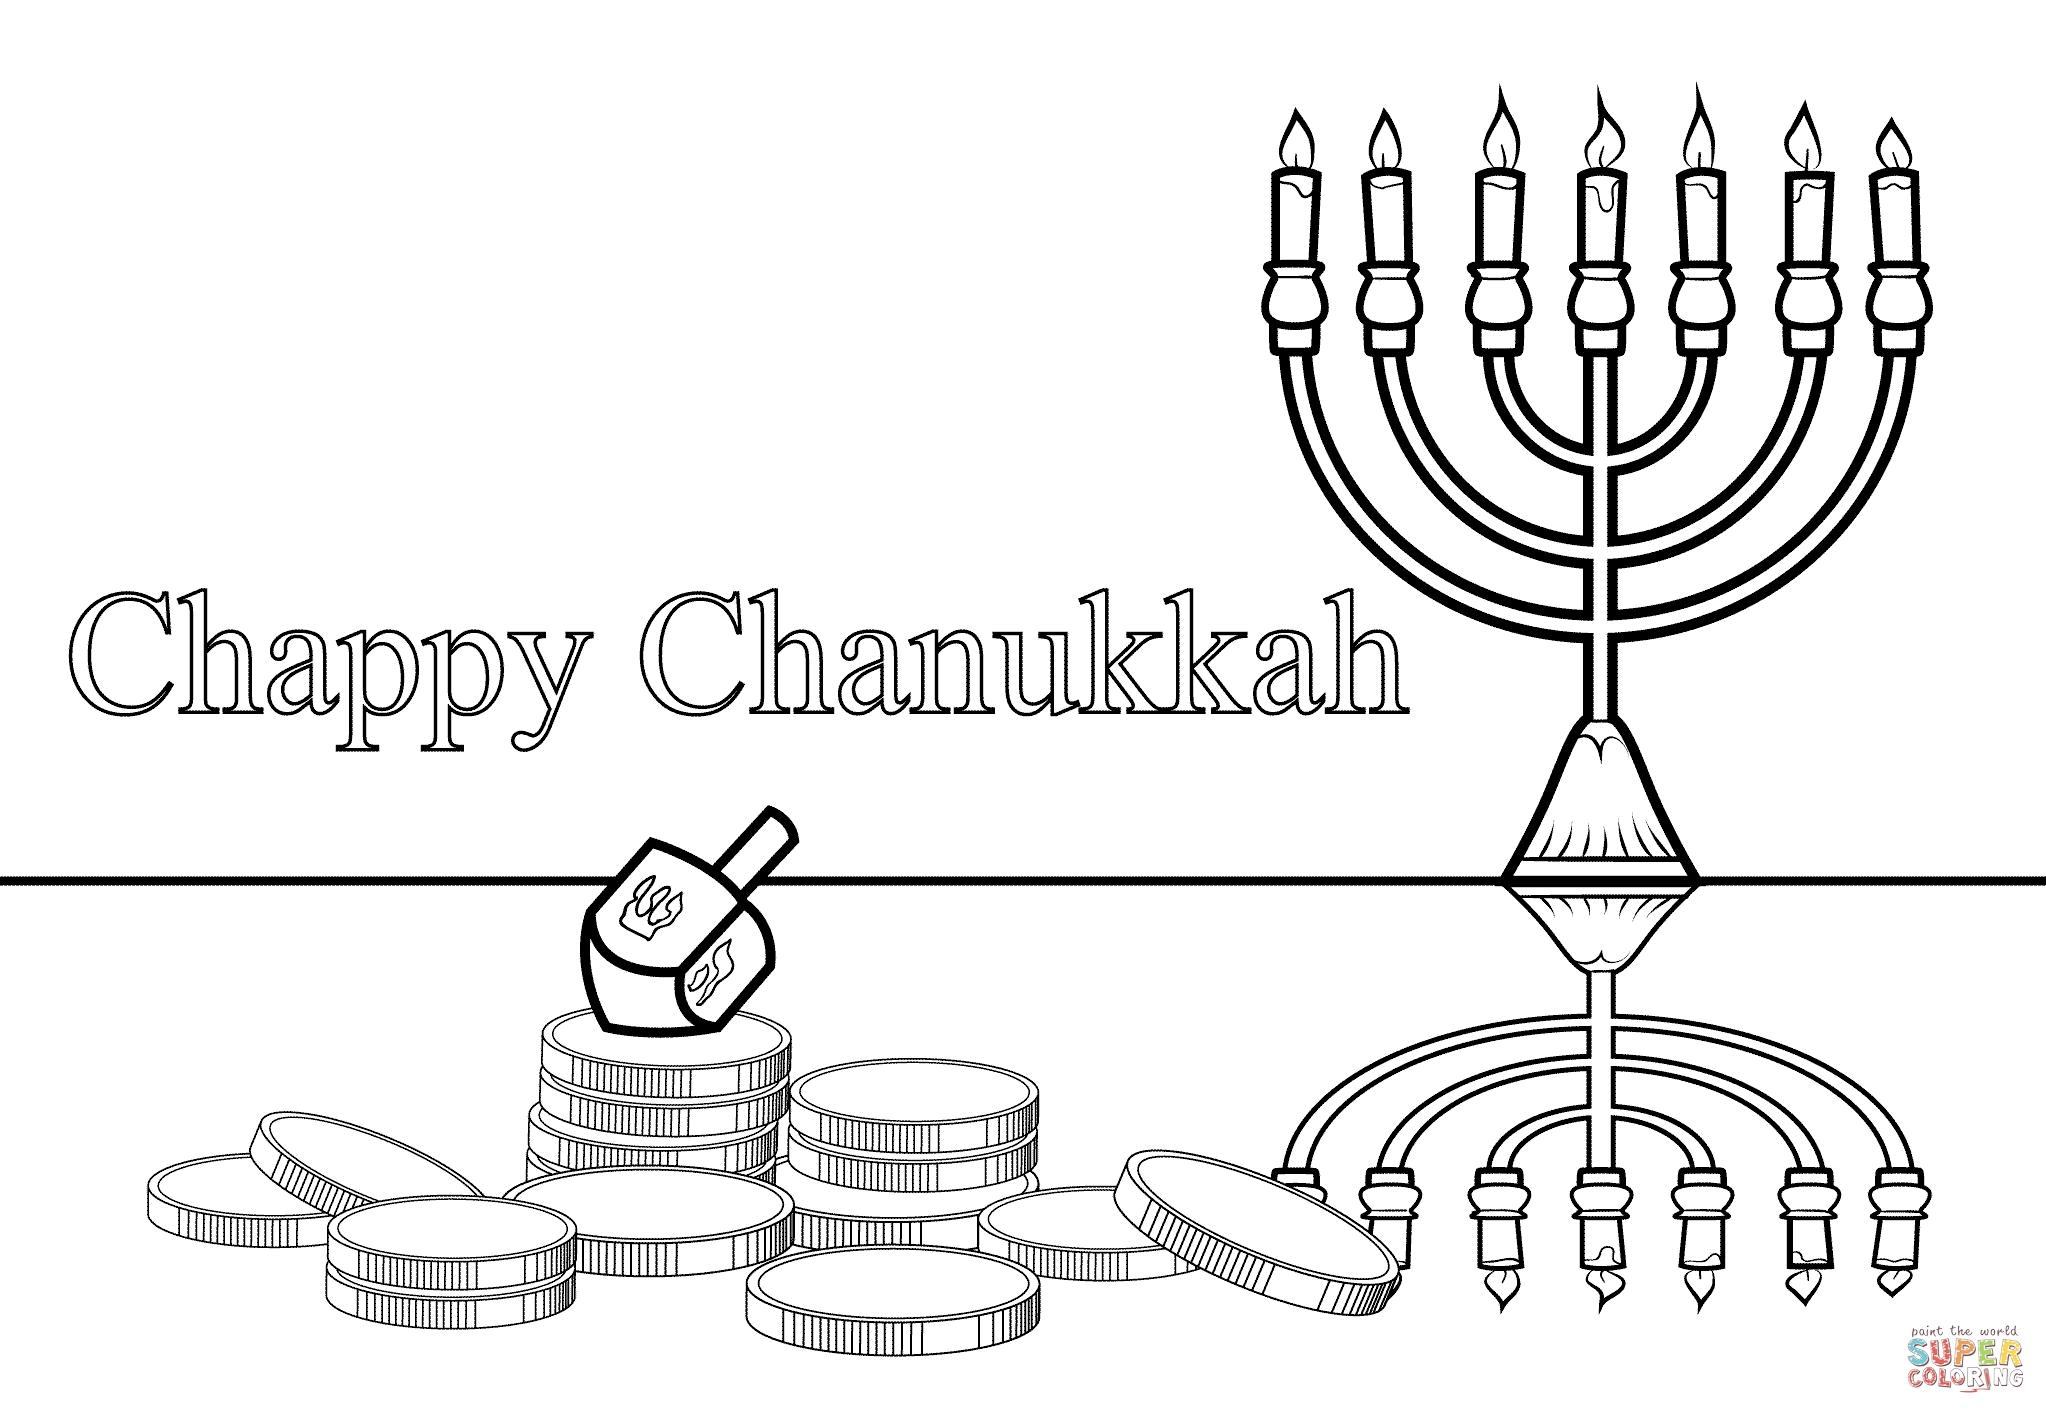 hanukkah coloring pages printable - free hanukkah coloring pages printable